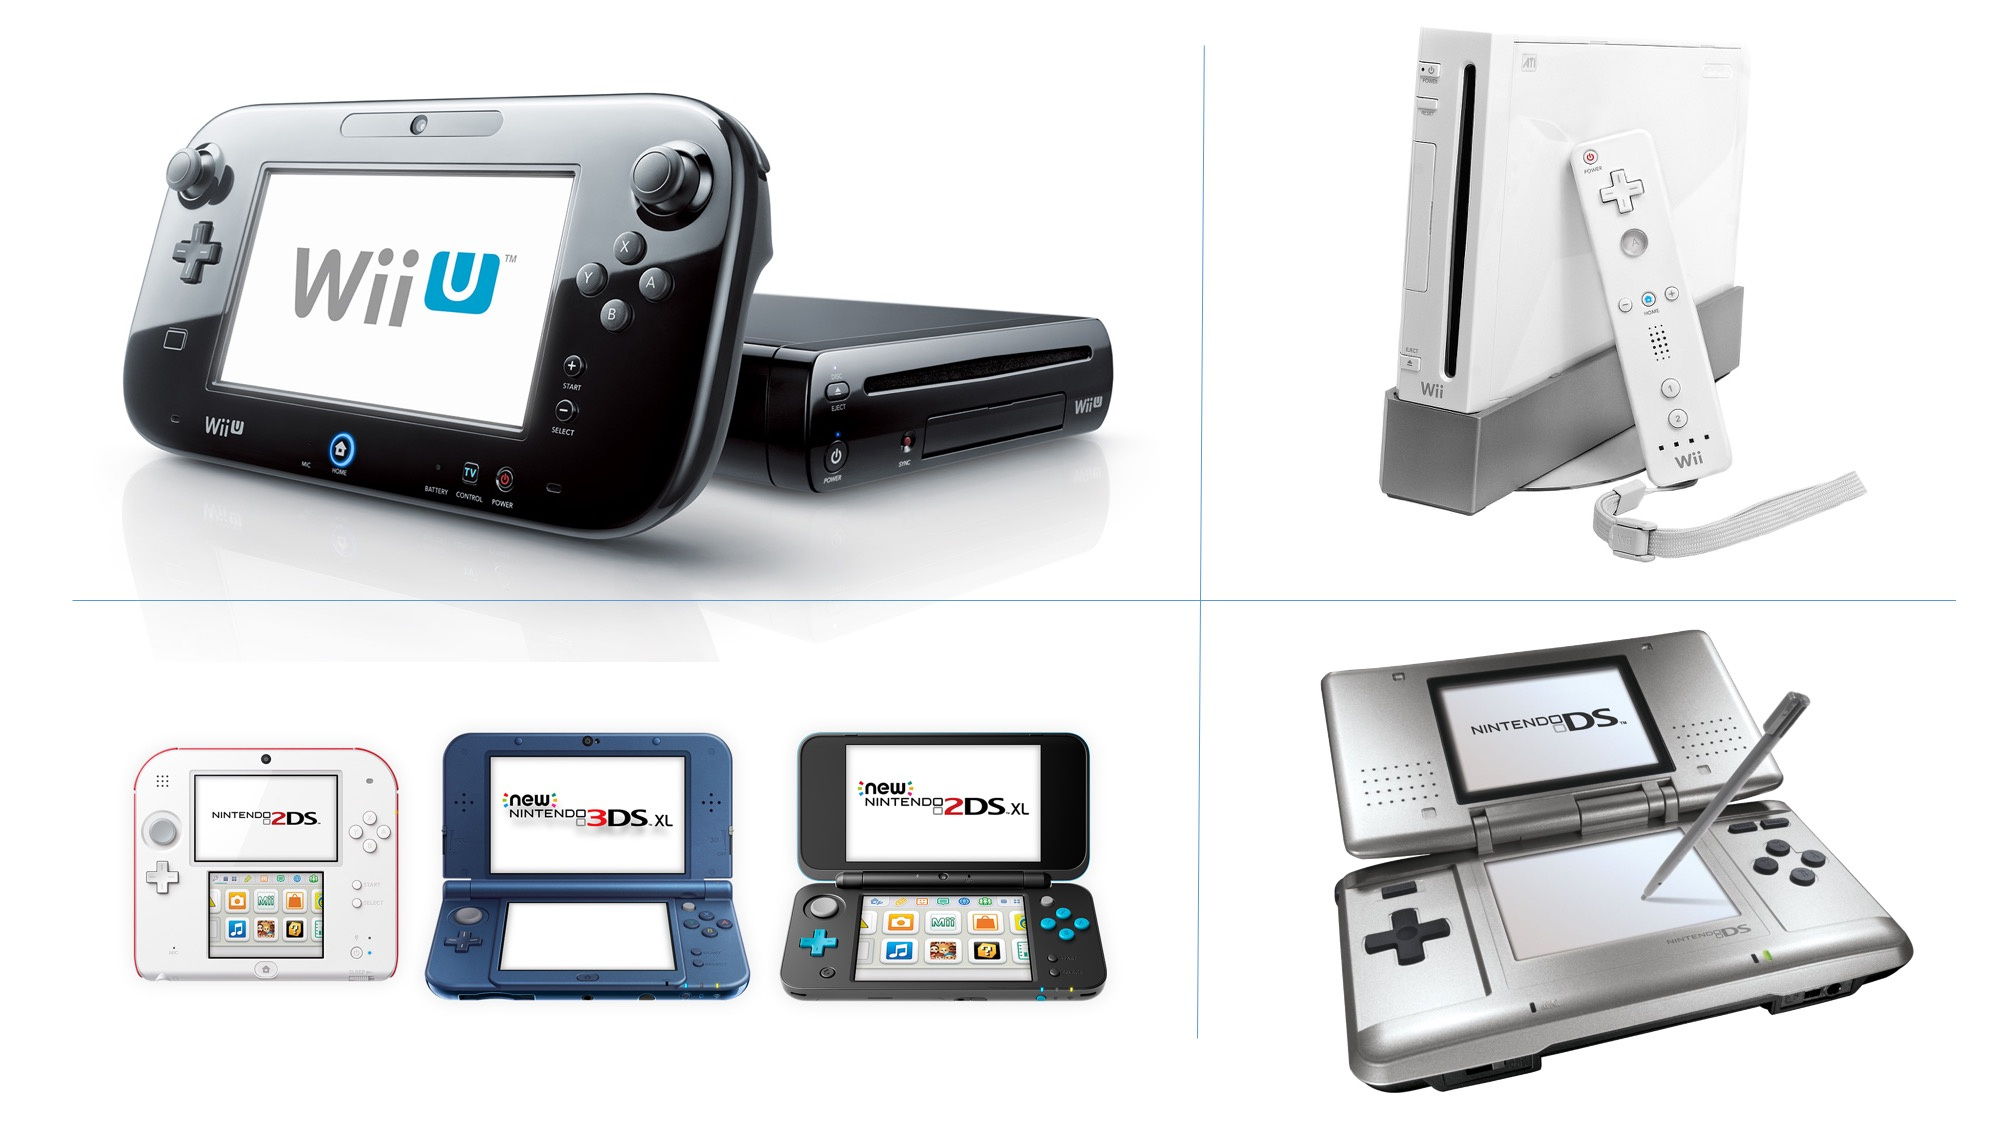 The Top Ten Best-Selling Games For Wii U, 3DS, Wii And DS (As Of September 2019)